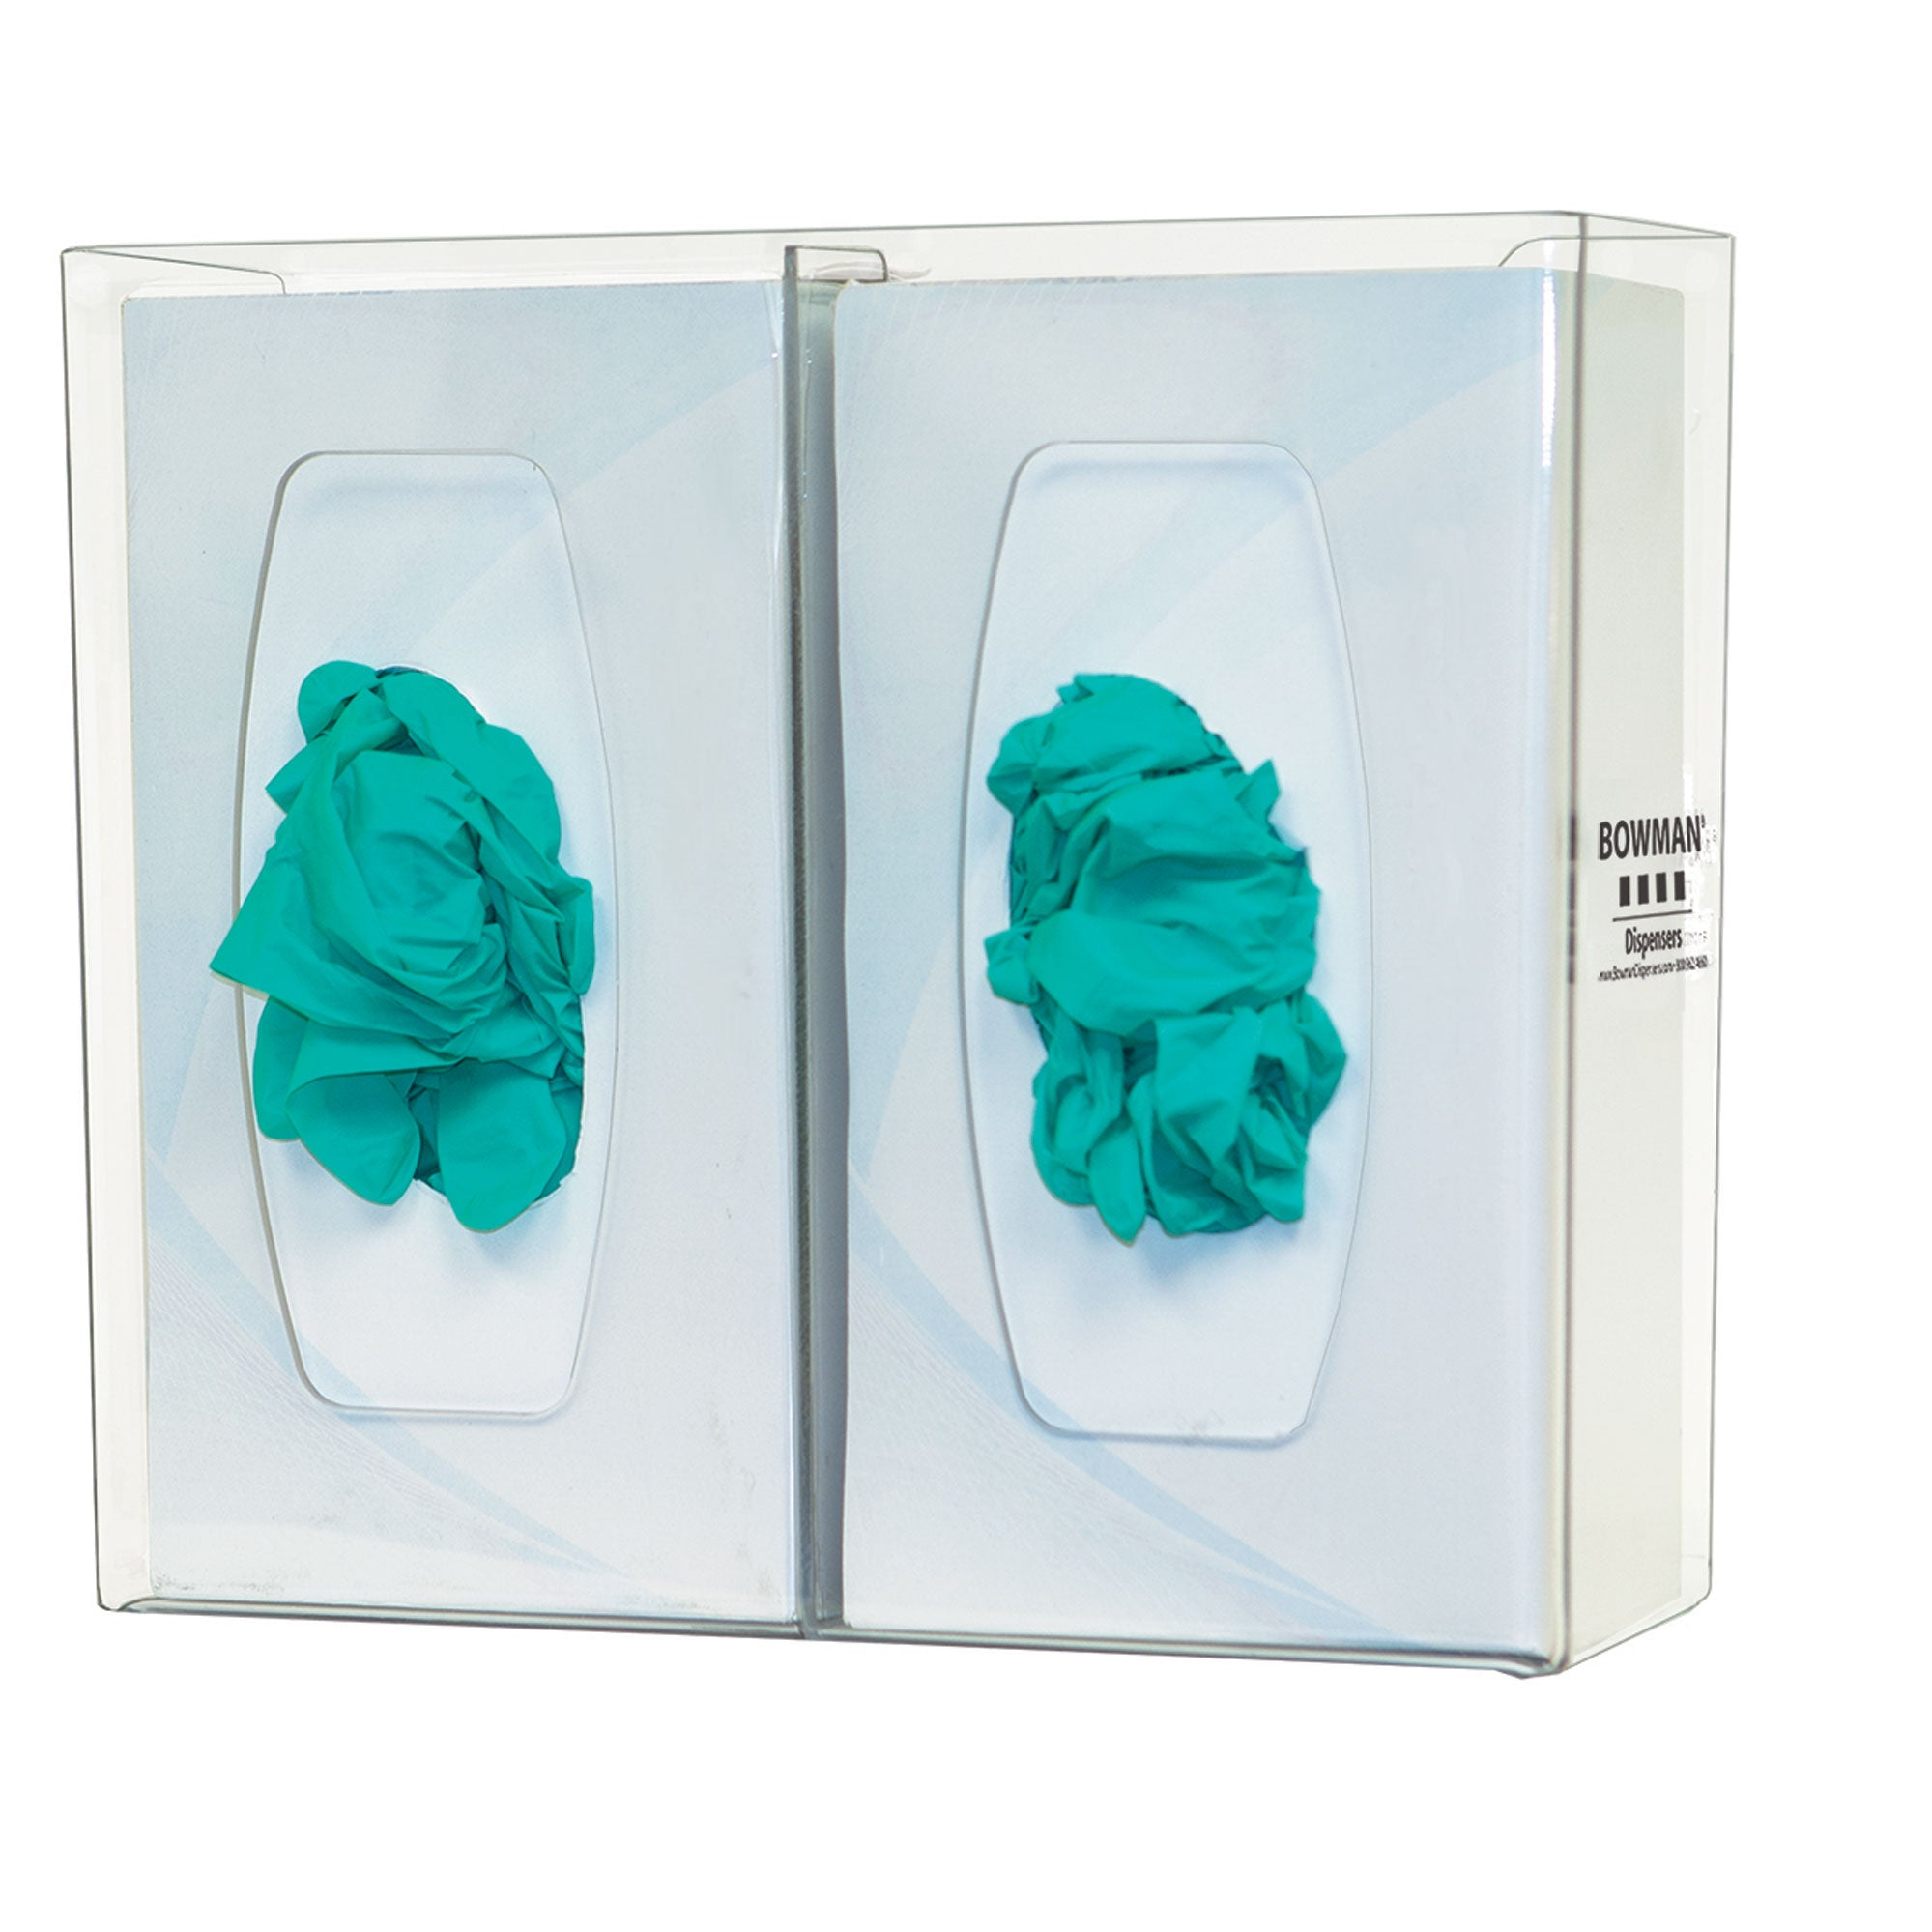 Bowman PETG Glove Box Dispenser with Divider